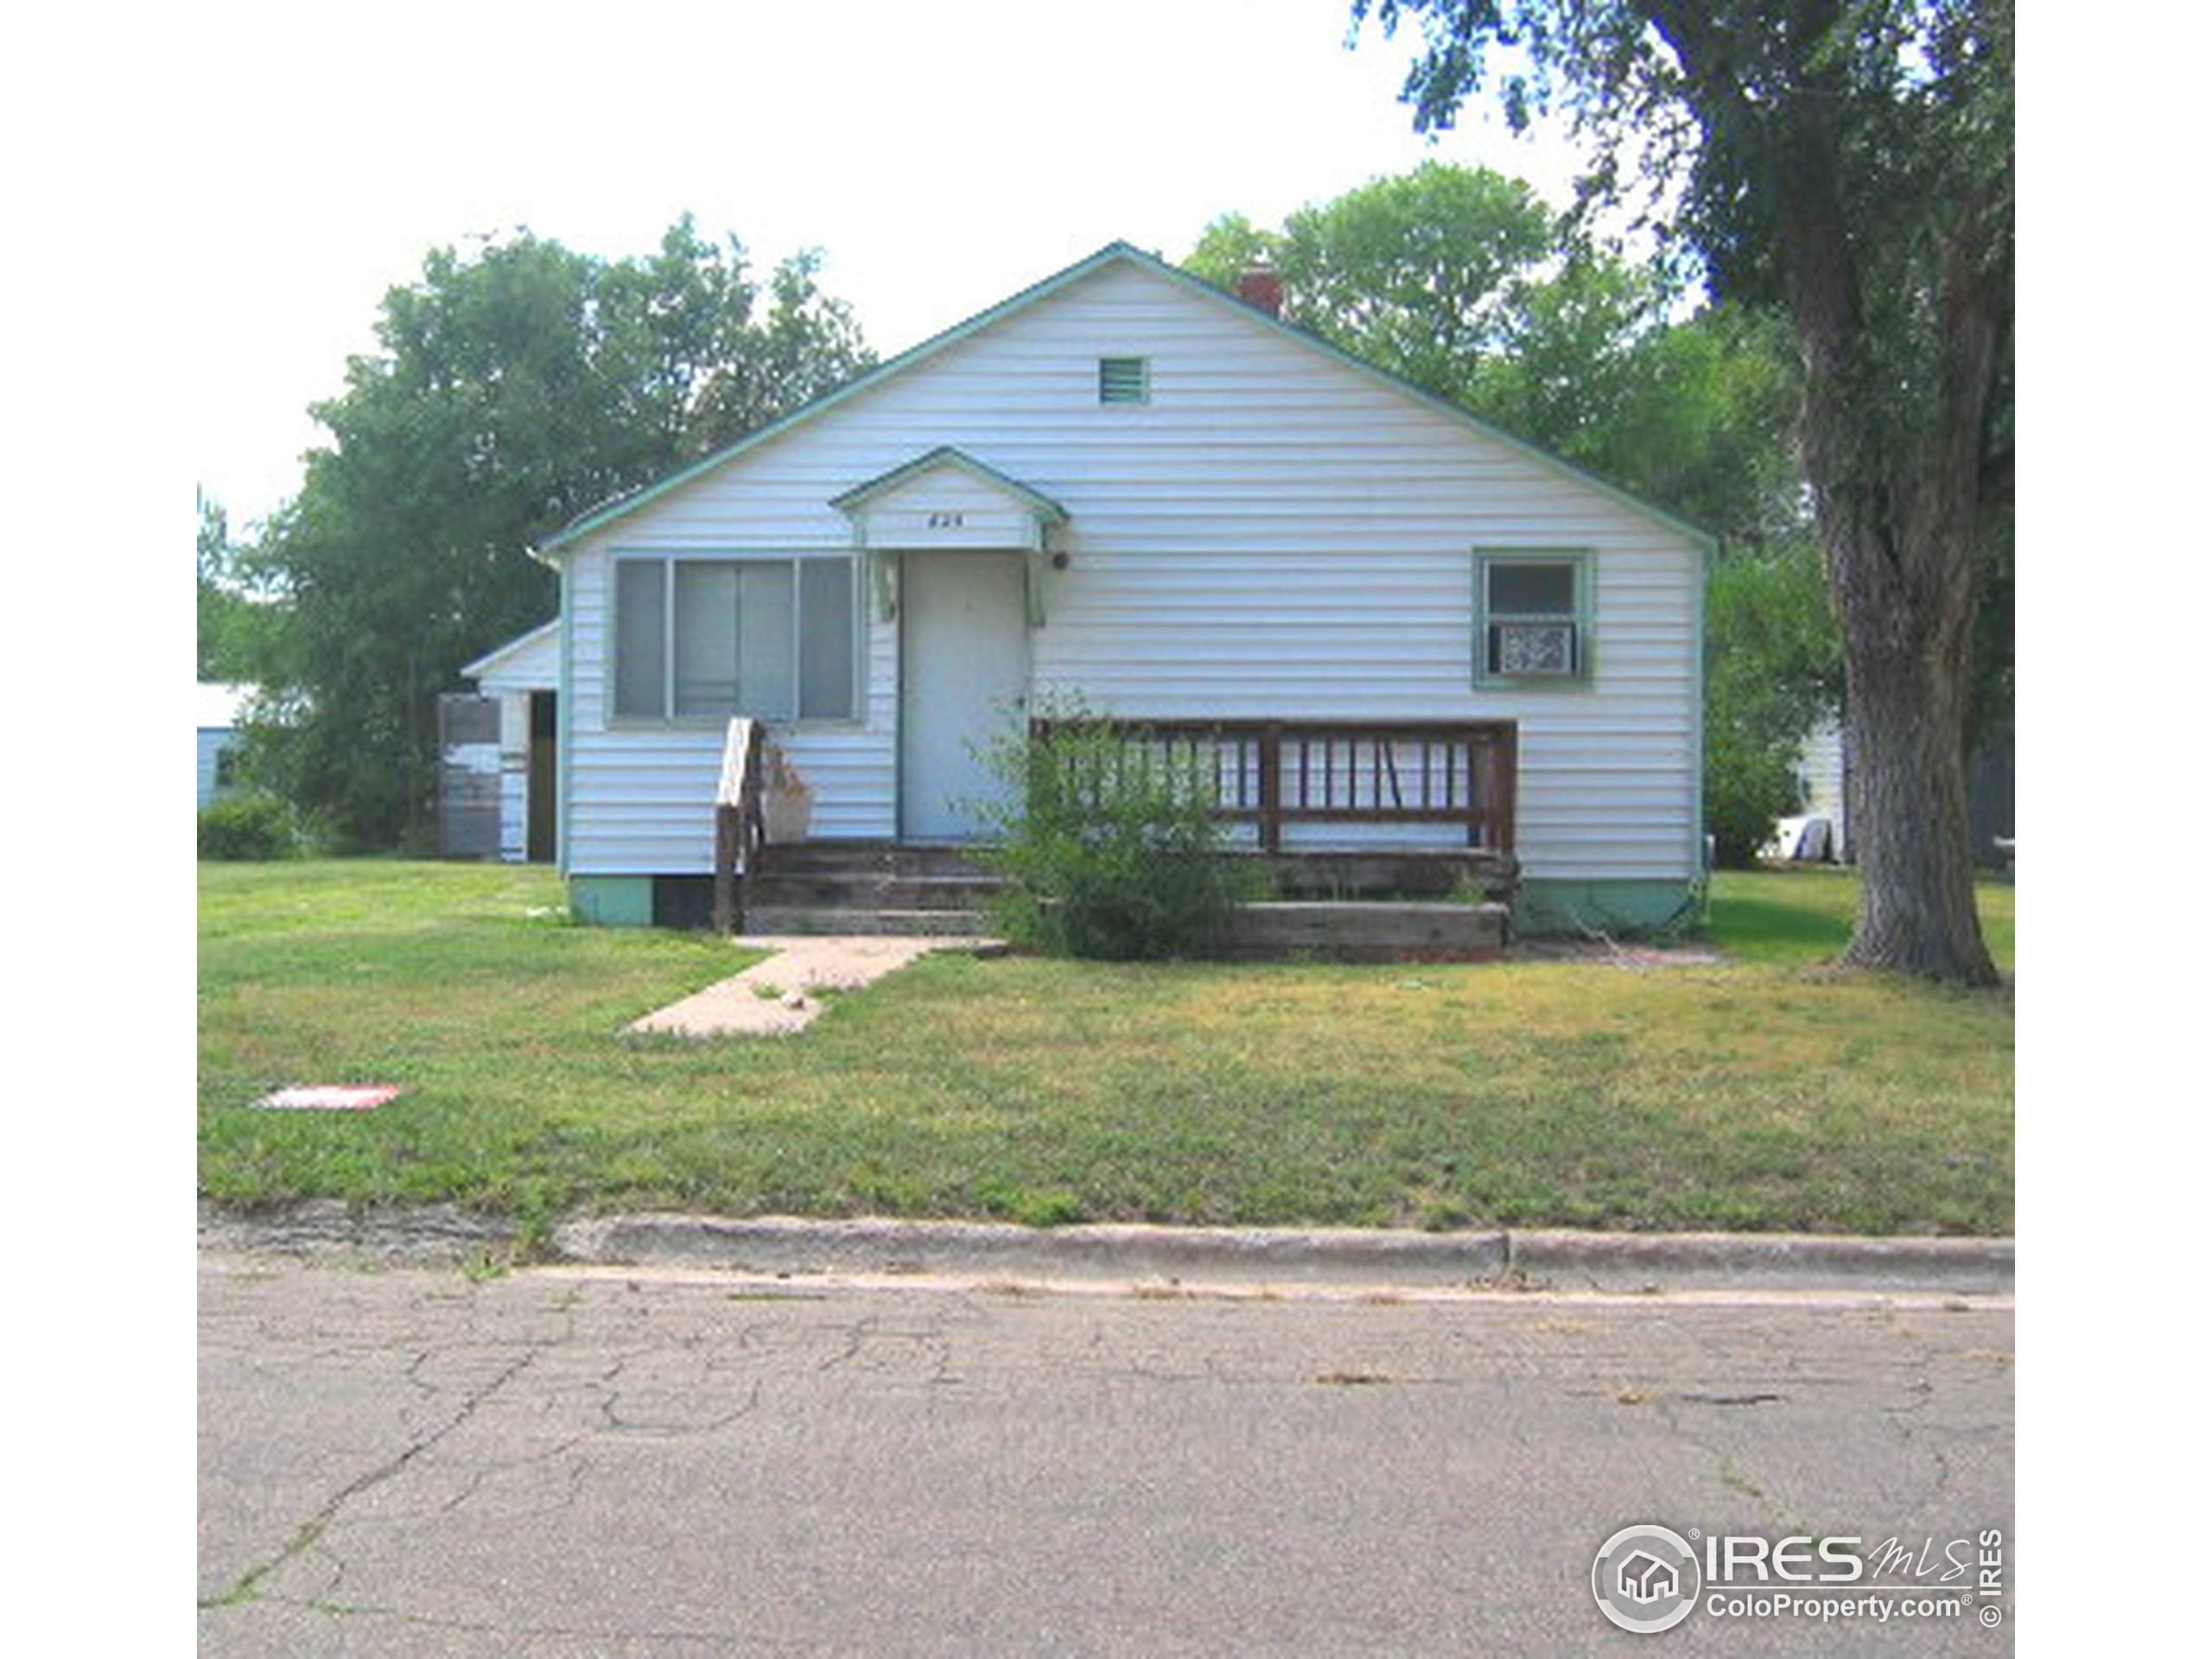 3817 W 12th St Rd, Greeley, CO 80634 (MLS #907883) :: Colorado Home Finder Realty